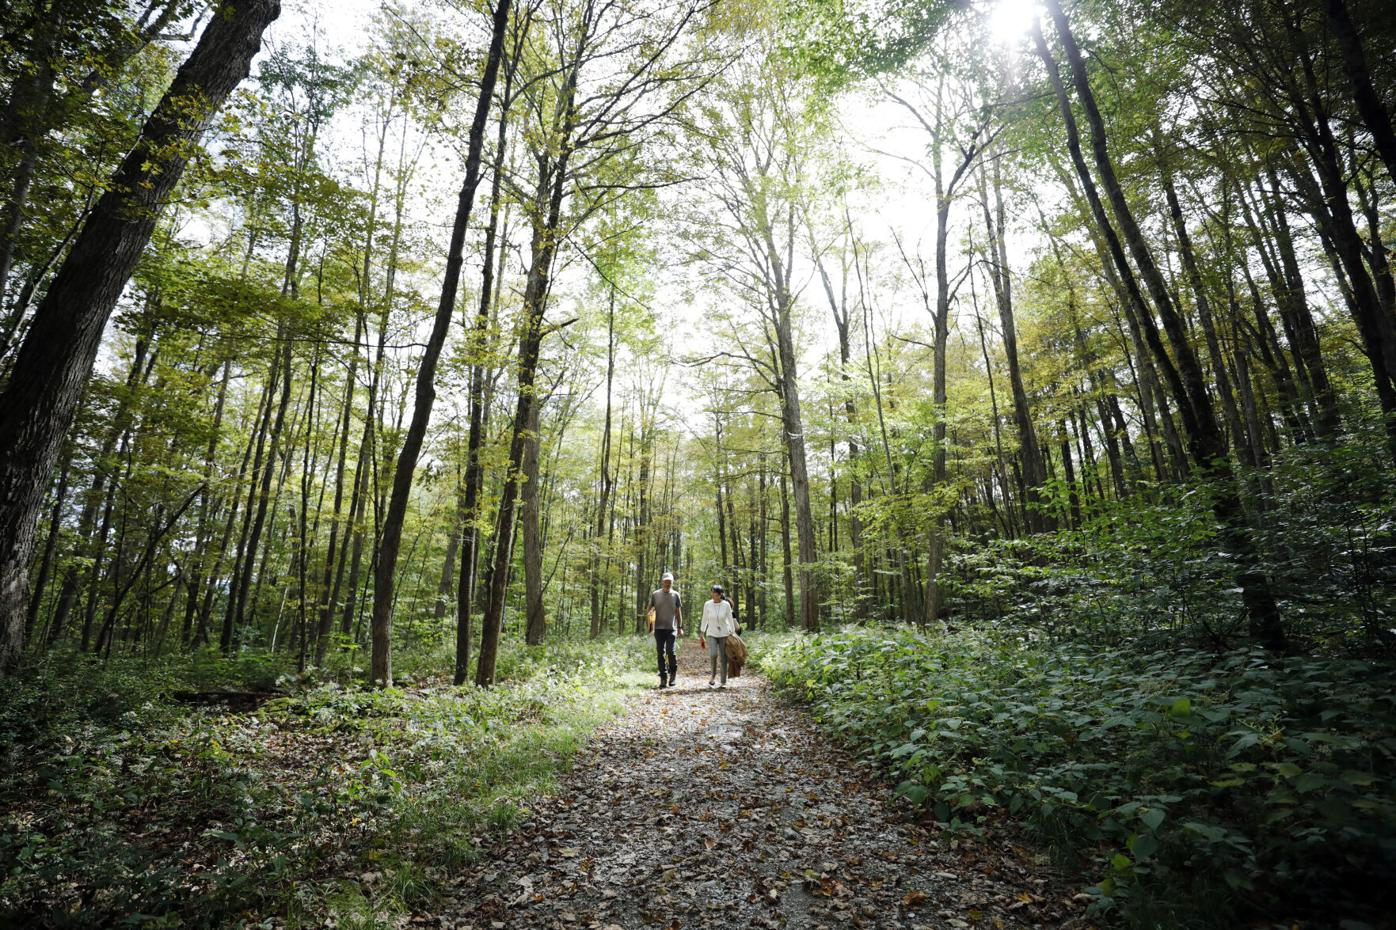 group of people walking on woods trail